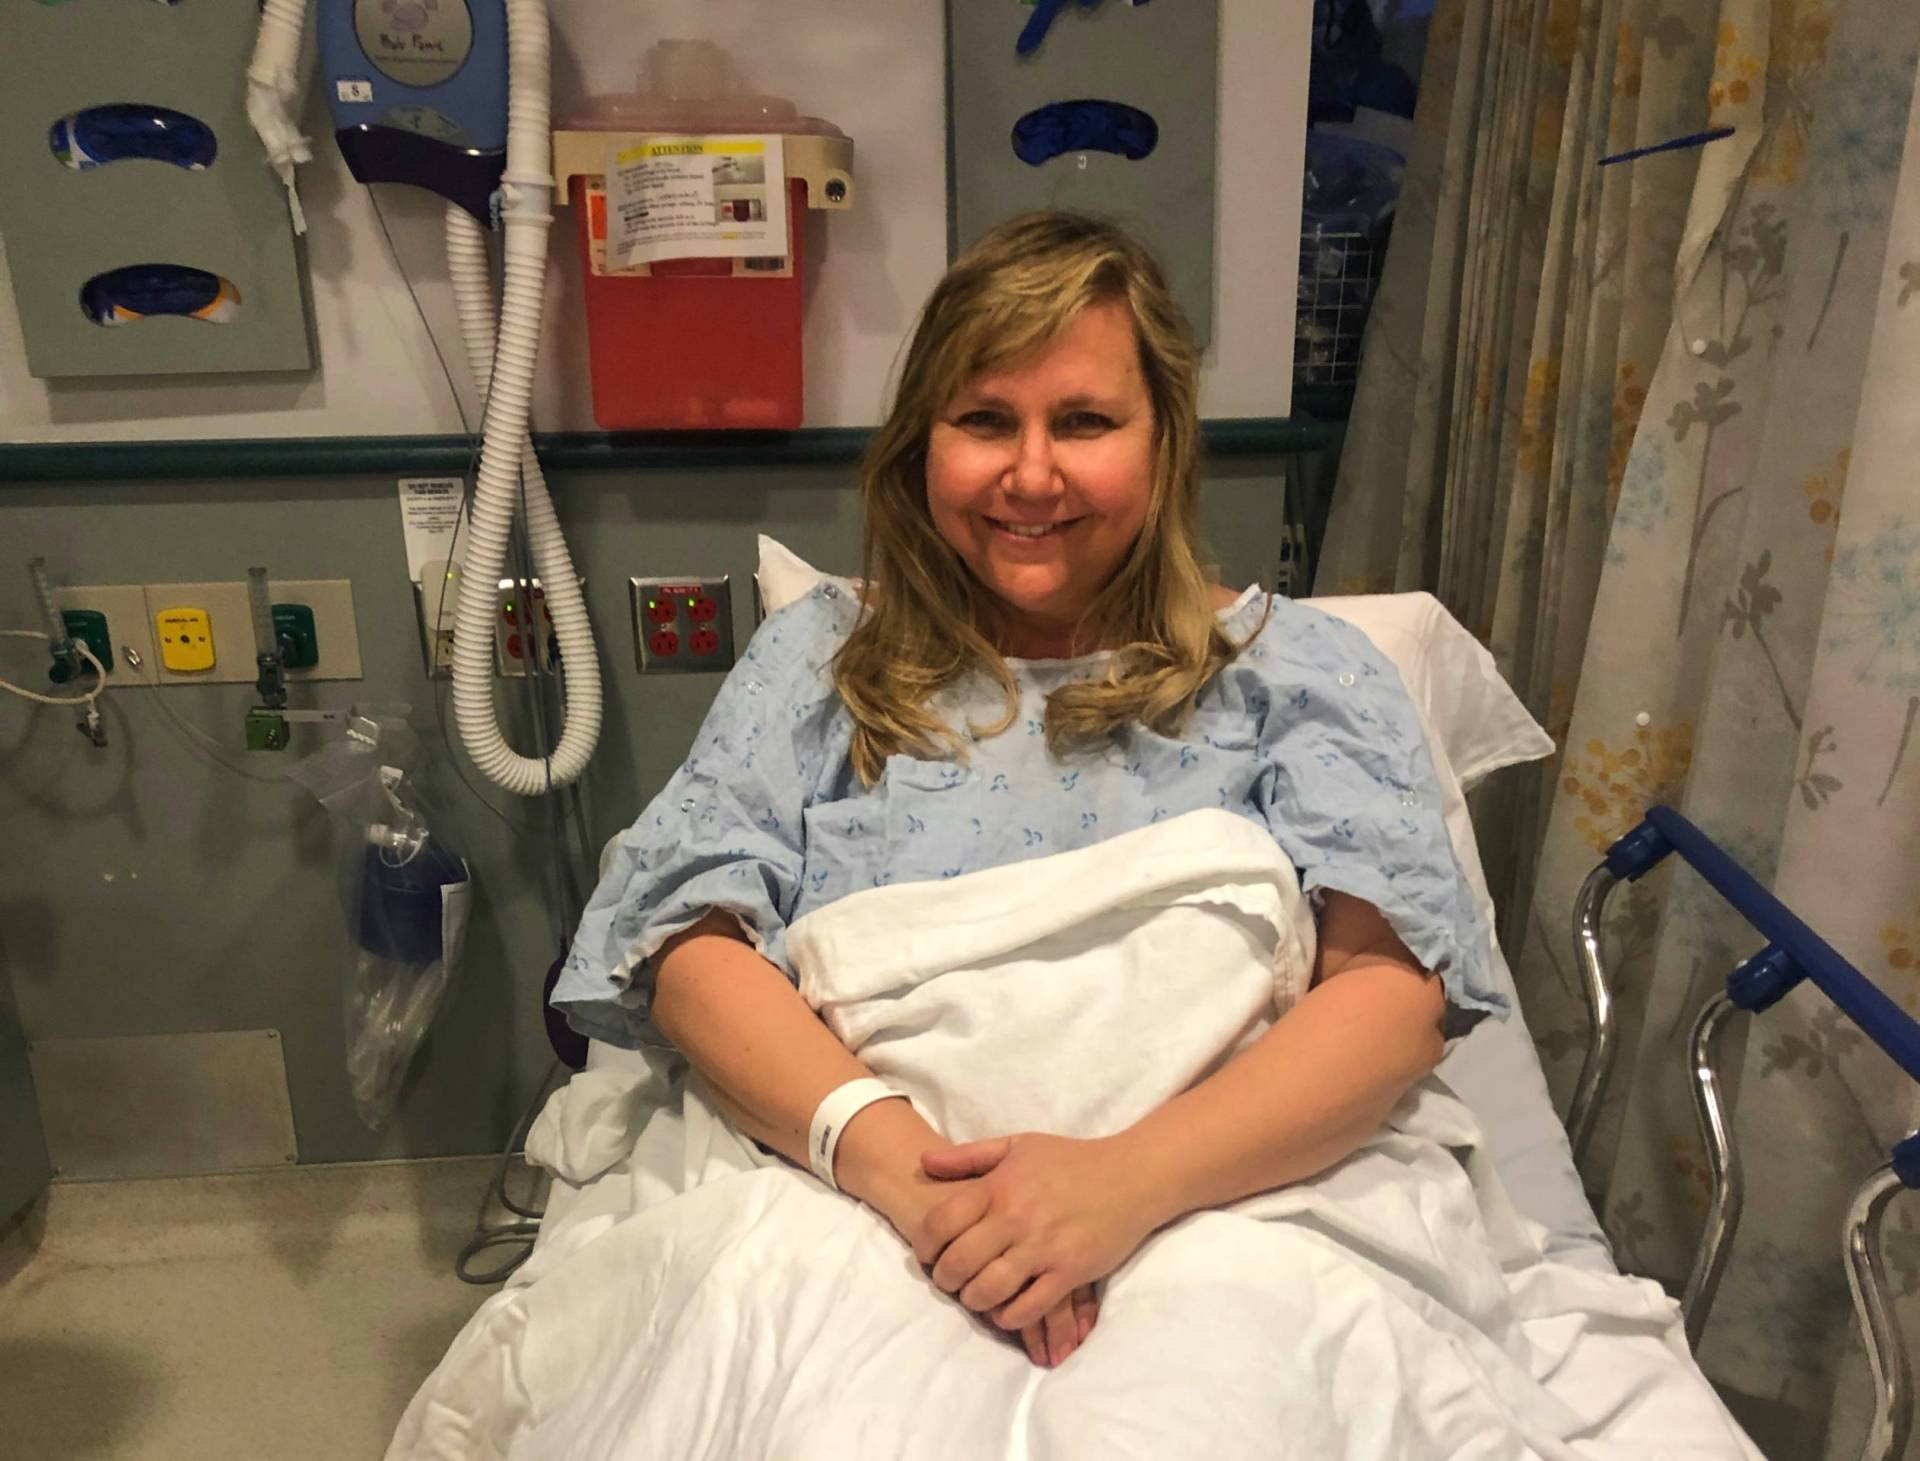 Rosemary Pathy-McKinney was diagnosed with two brain tumors in February just as the coronavirus was starting to spread in the Bay Area.